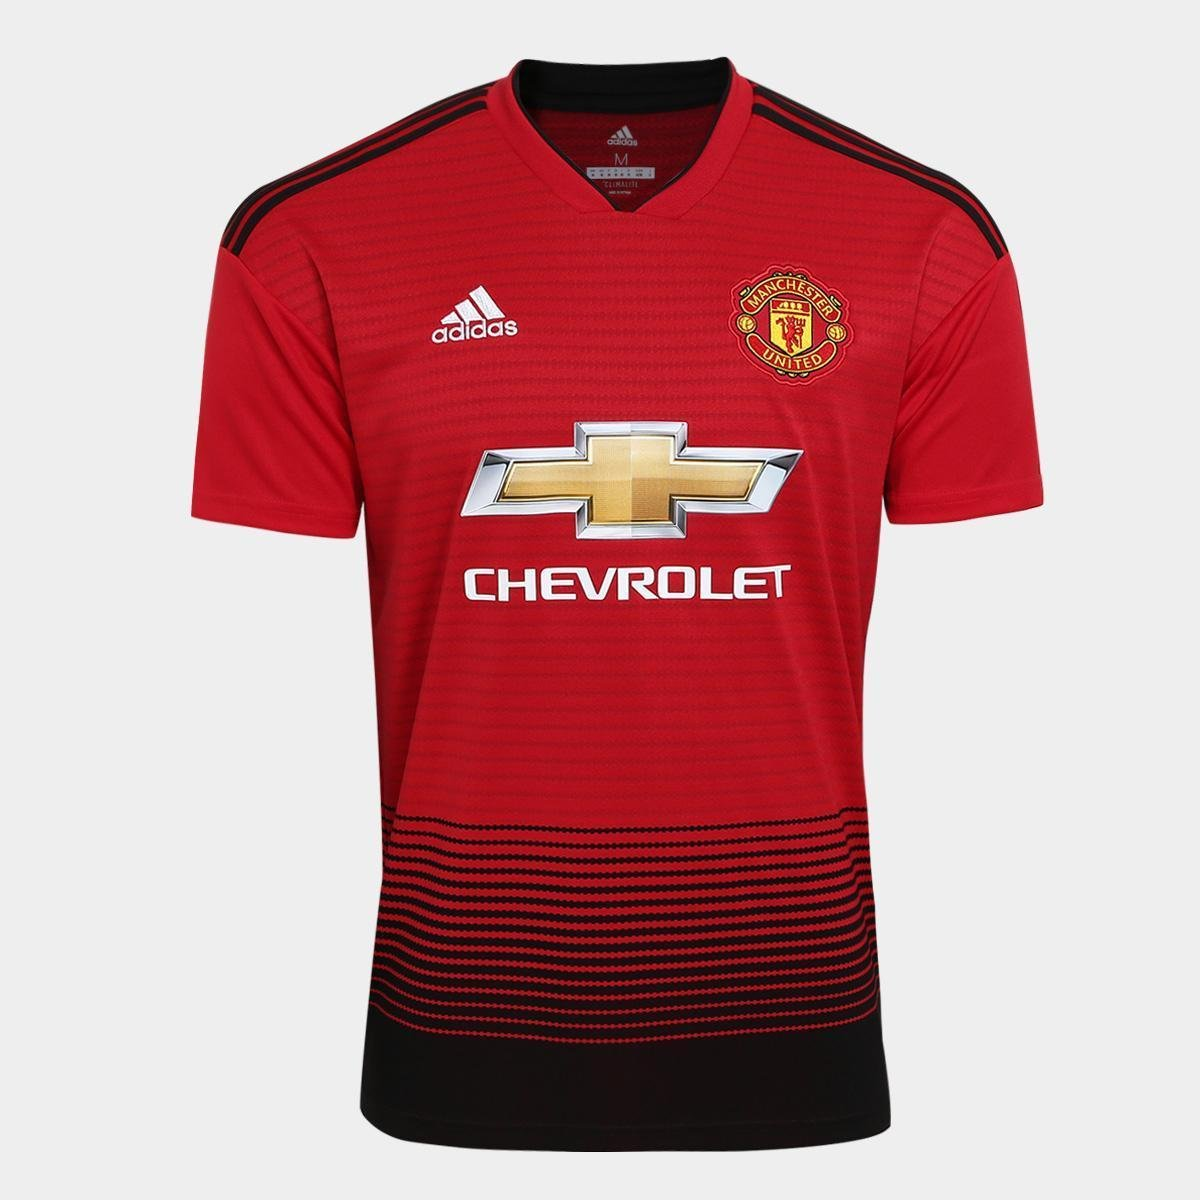 5d40c45a0 Camisa Manchester United Home 2018 s n° Torcedor Adidas Masculina - Compre  Agora